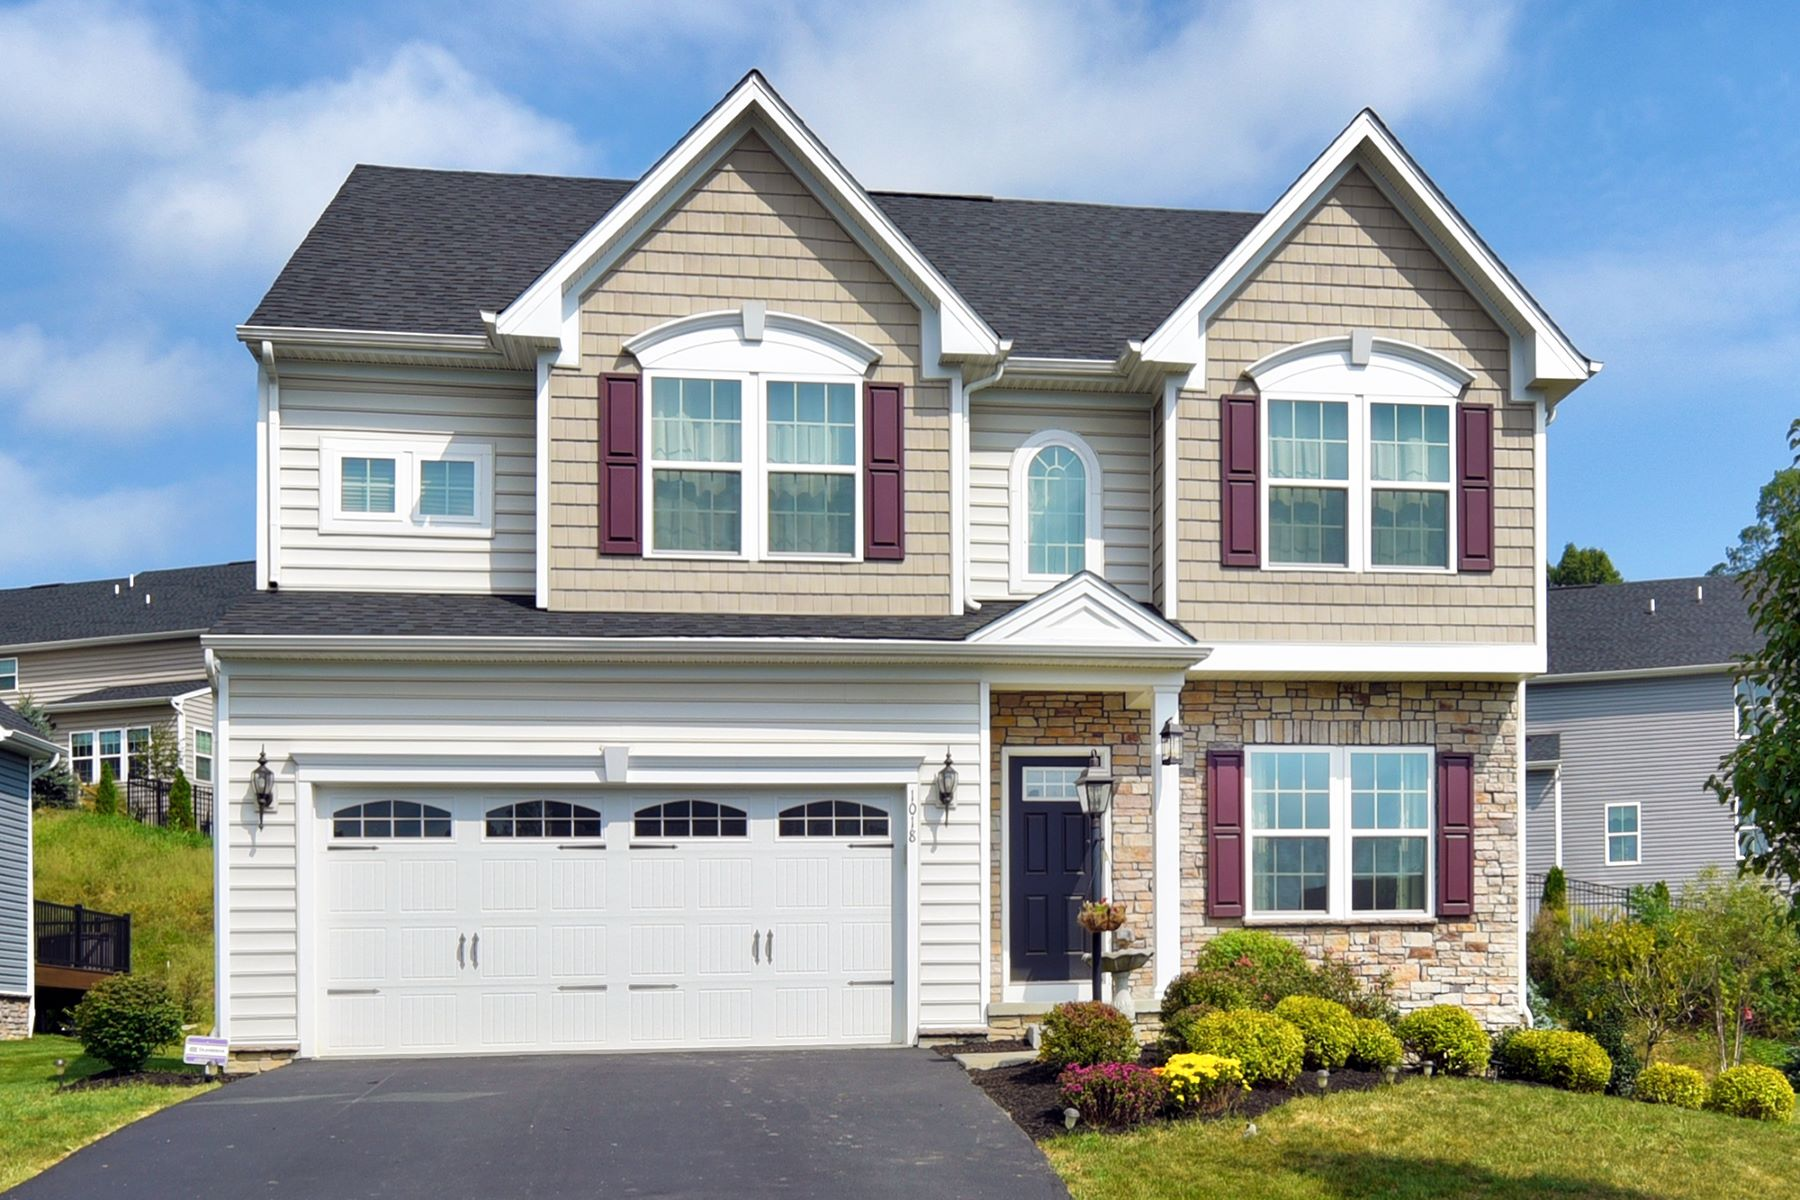 Single Family Homes for Sale at 1018 Millennium Drive Bethel Park, Pennsylvania 15102 United States